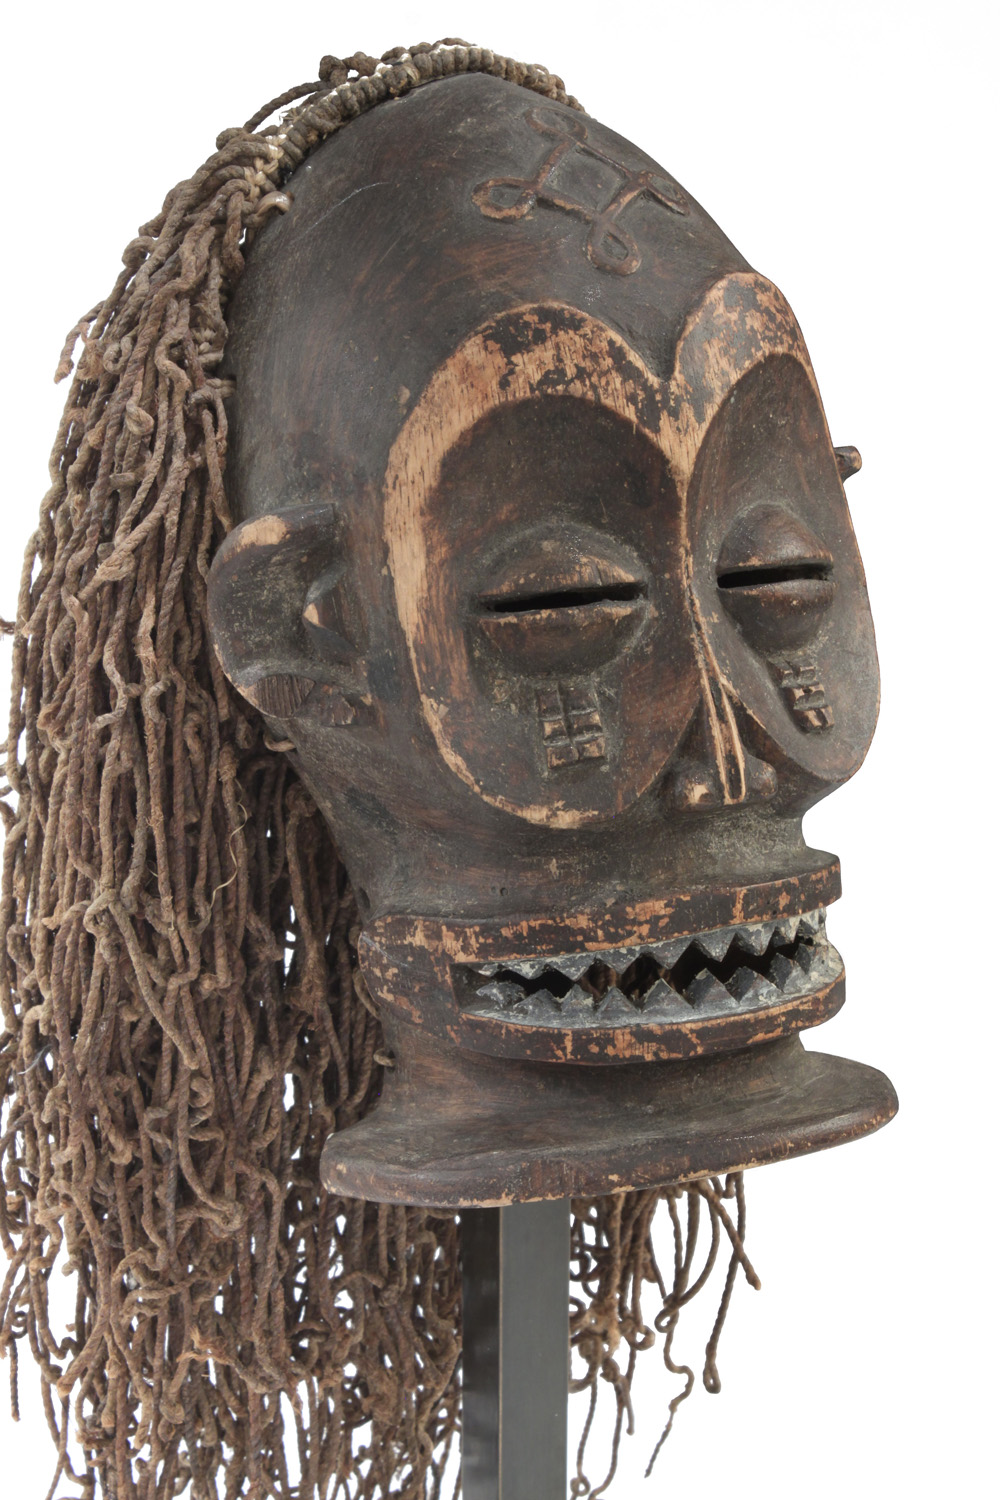 Springer 38 African mask Ekoi sculpture96 detail3 hires.jpg